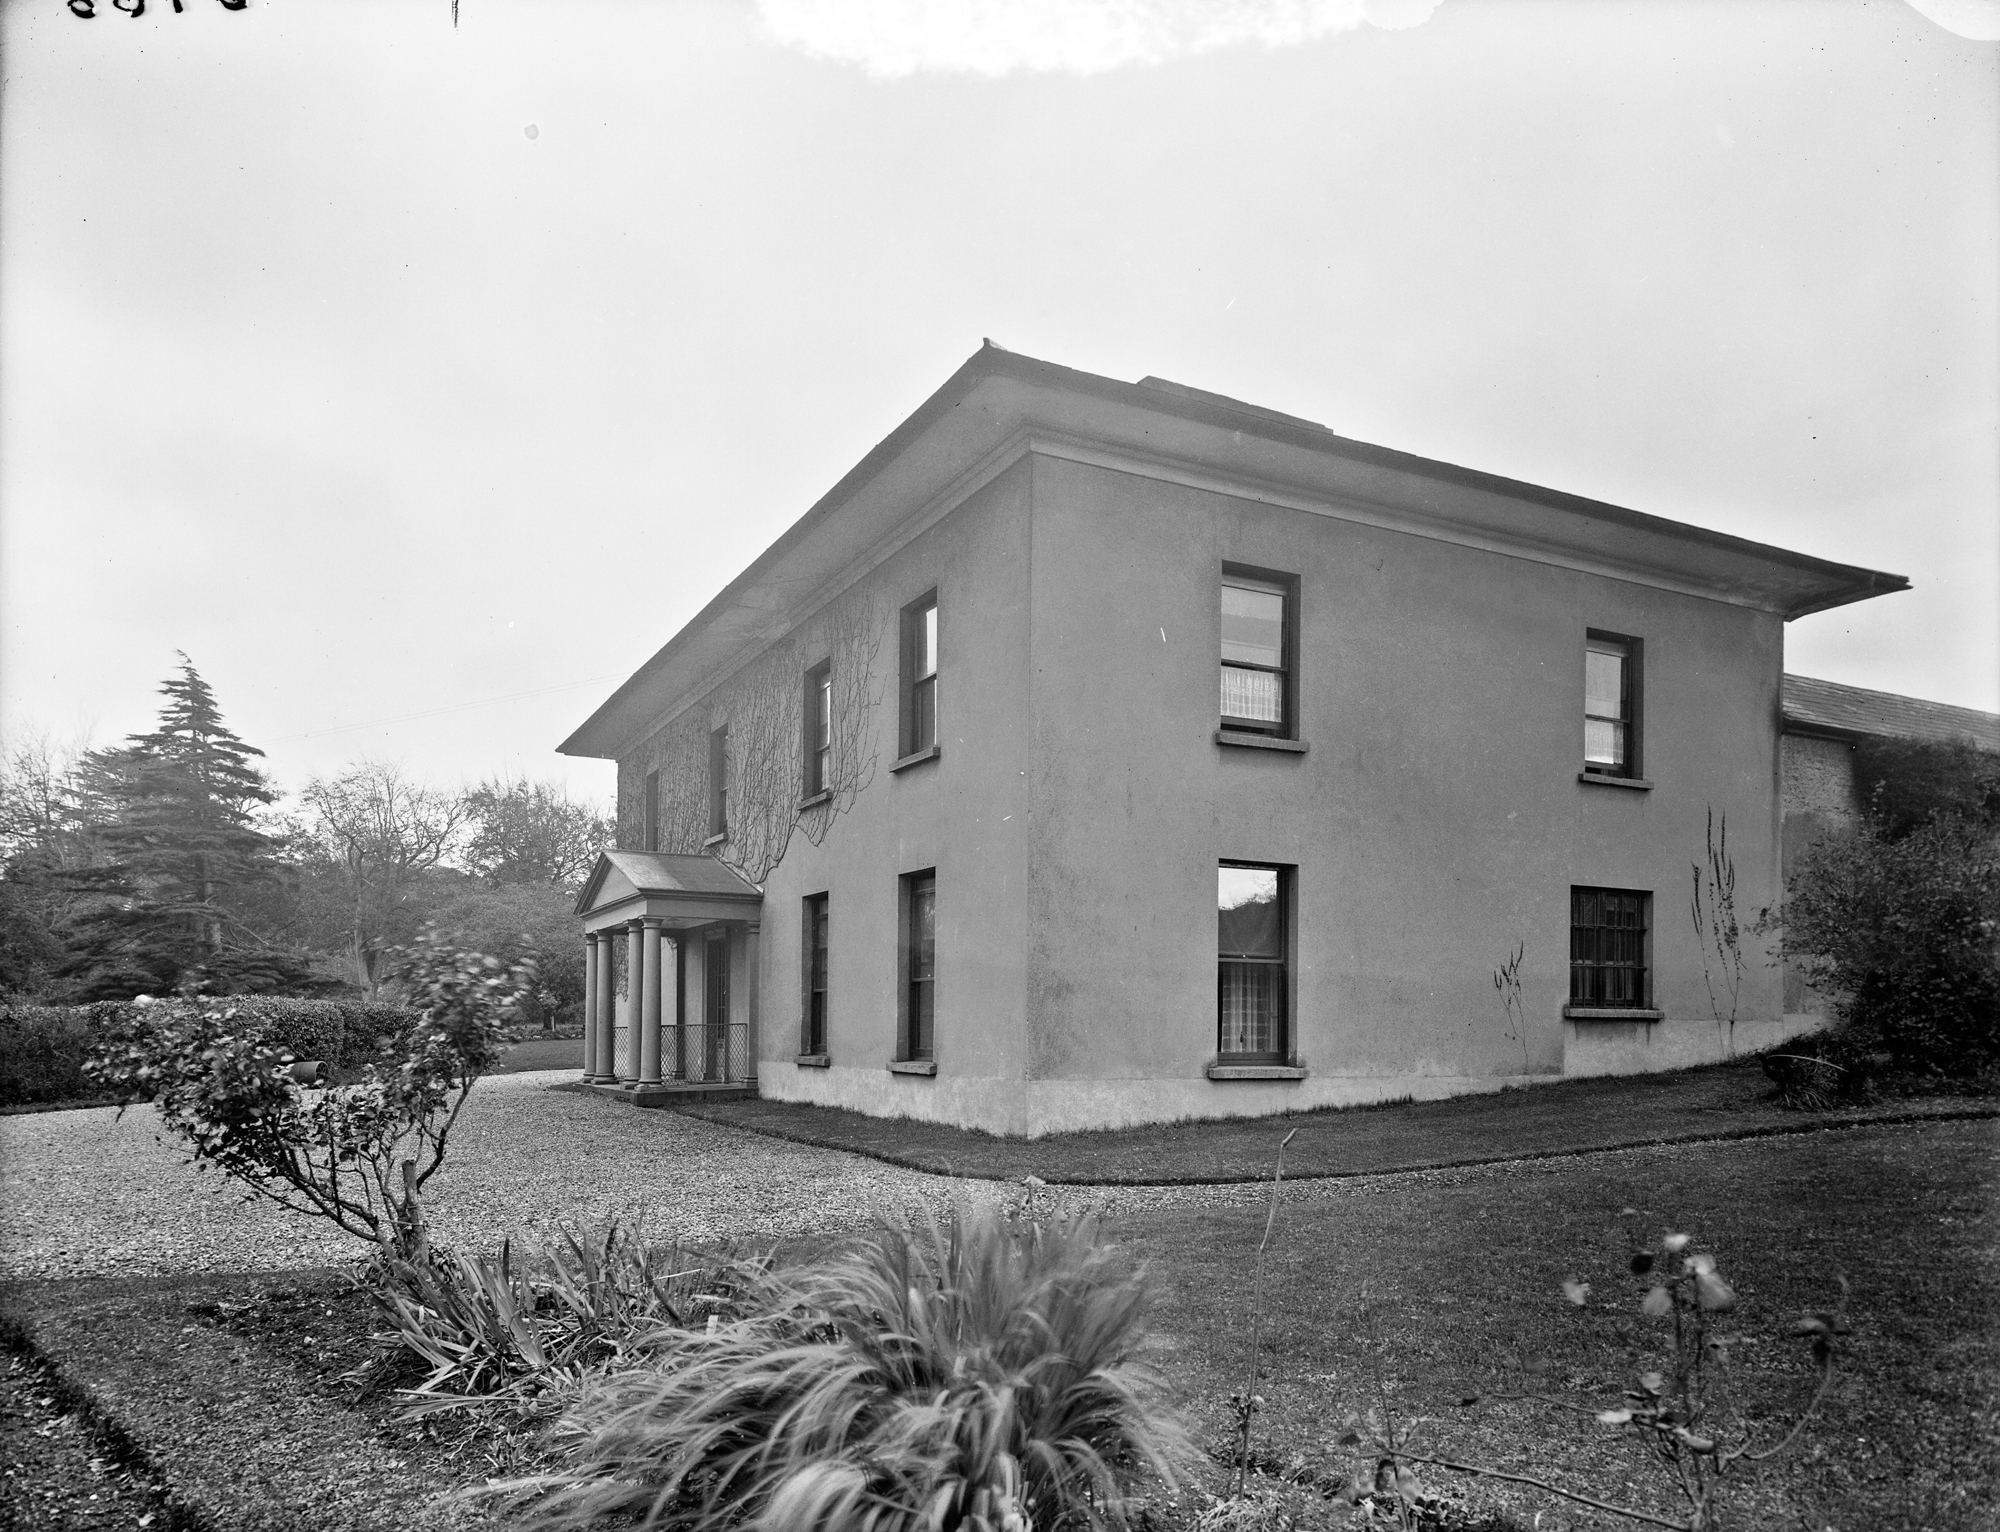 The Lodge, Spa, Ballynahinch : commissioned by Terence G.Johnson, Esq